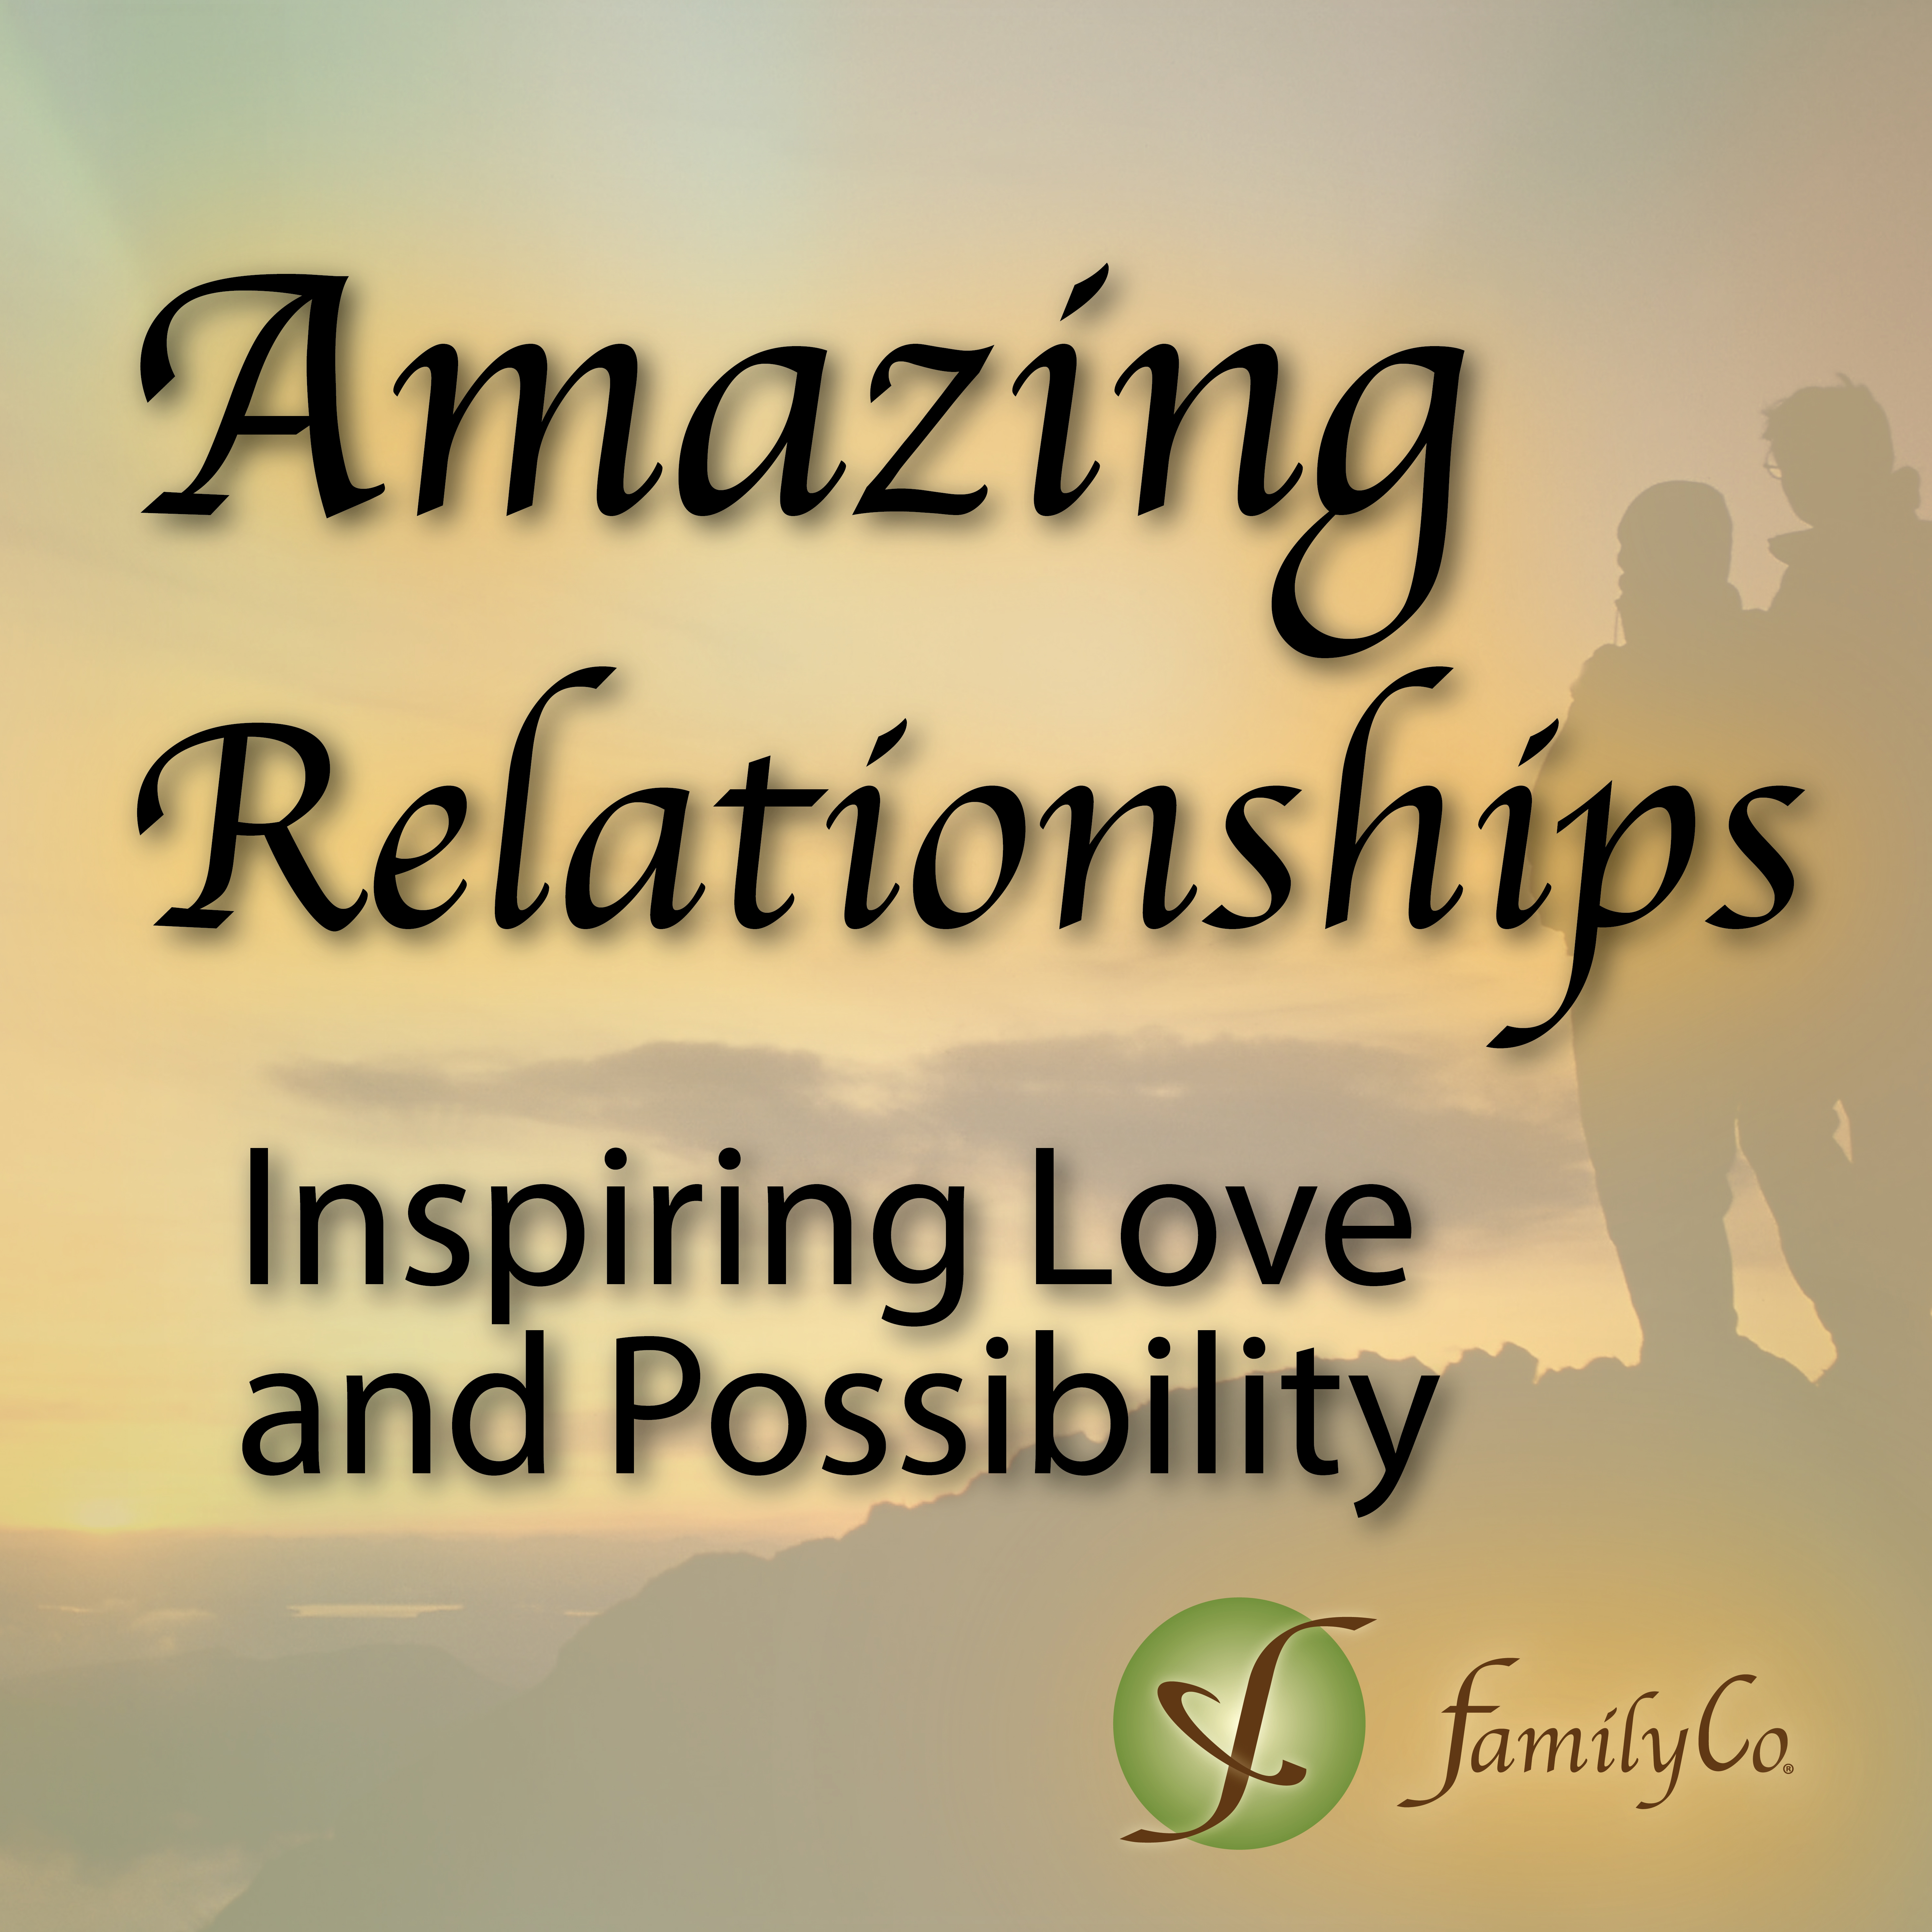 d relationship stories podcast